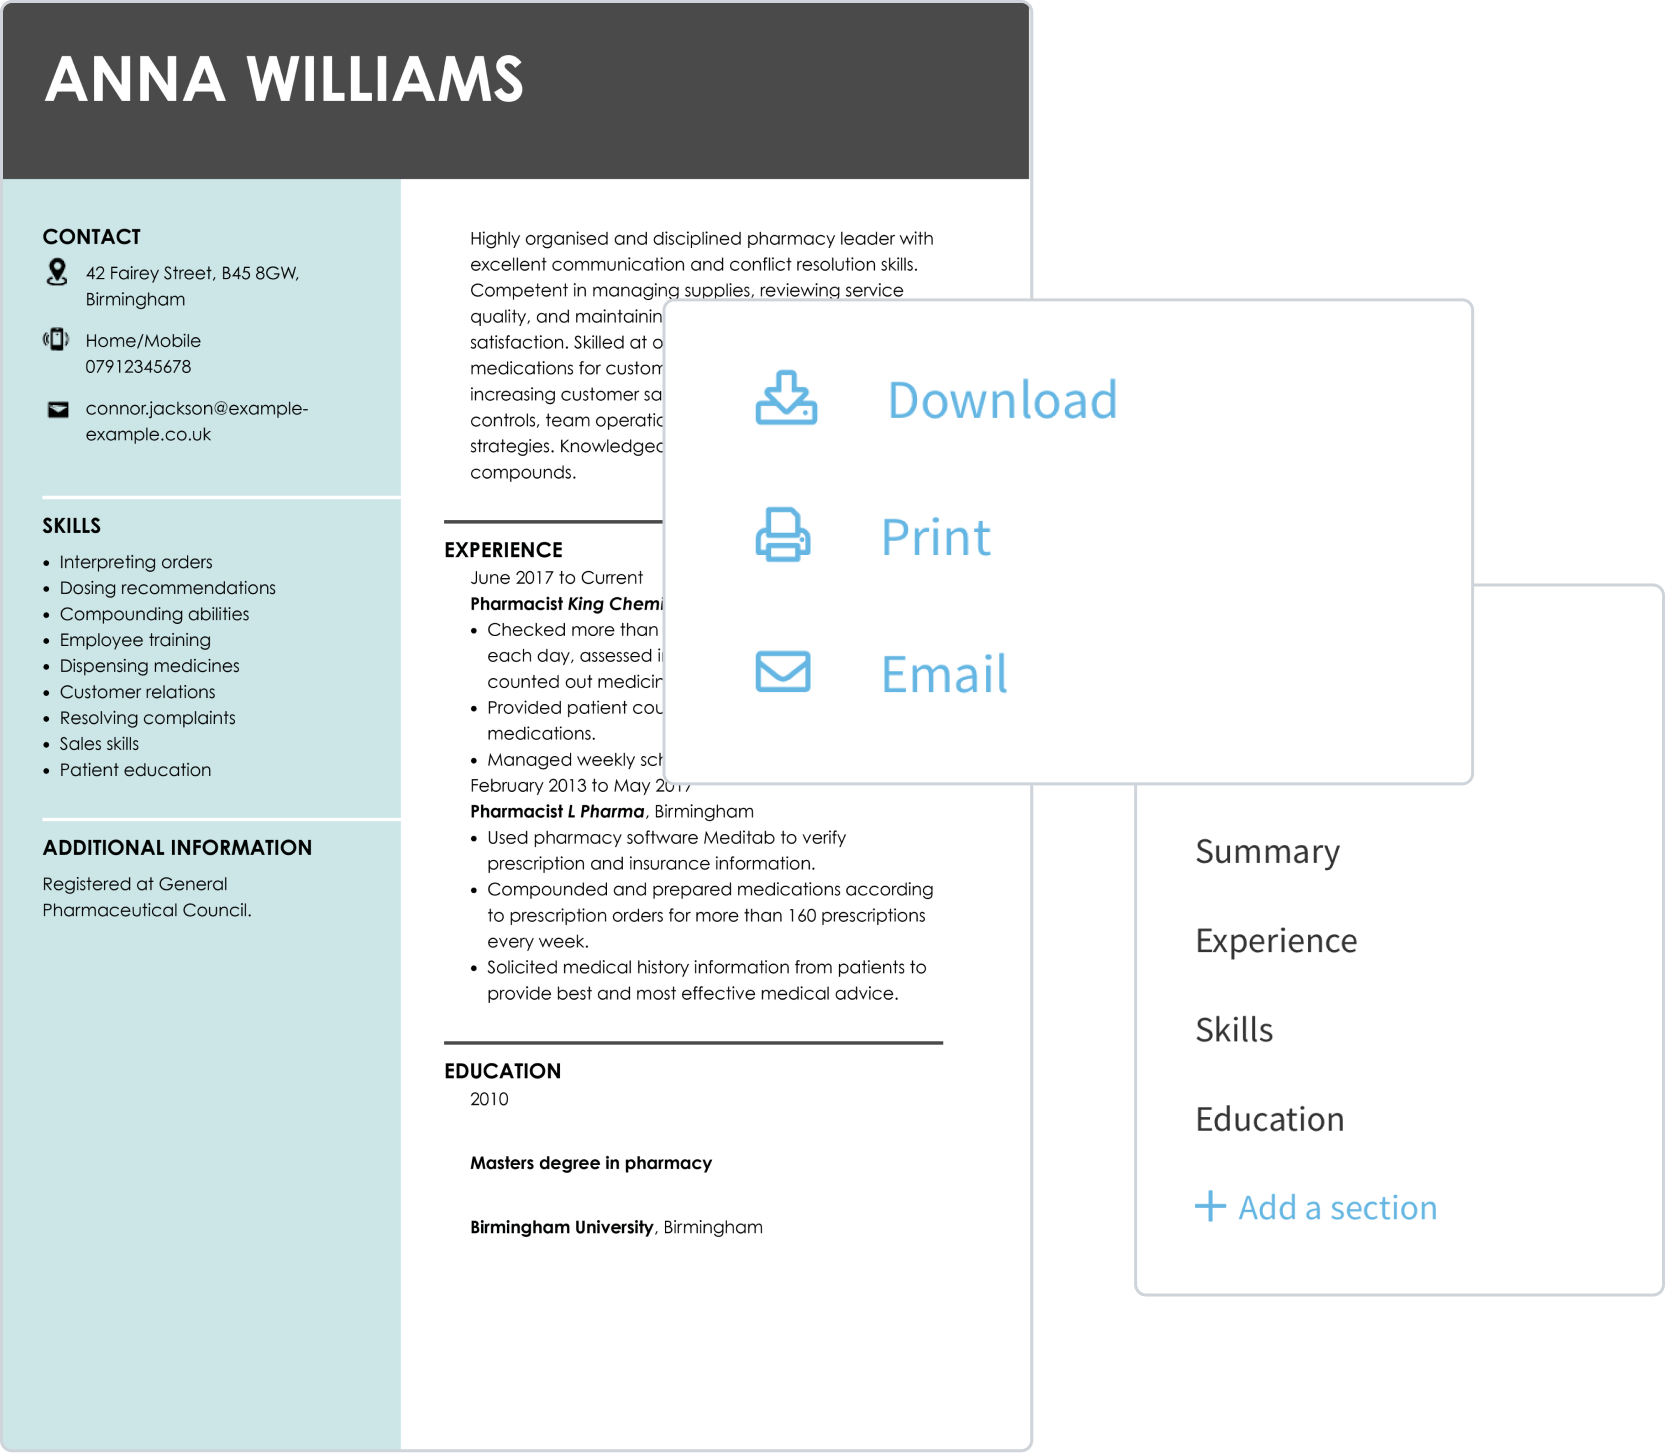 Build a CV online and download it as a PDF or DOC